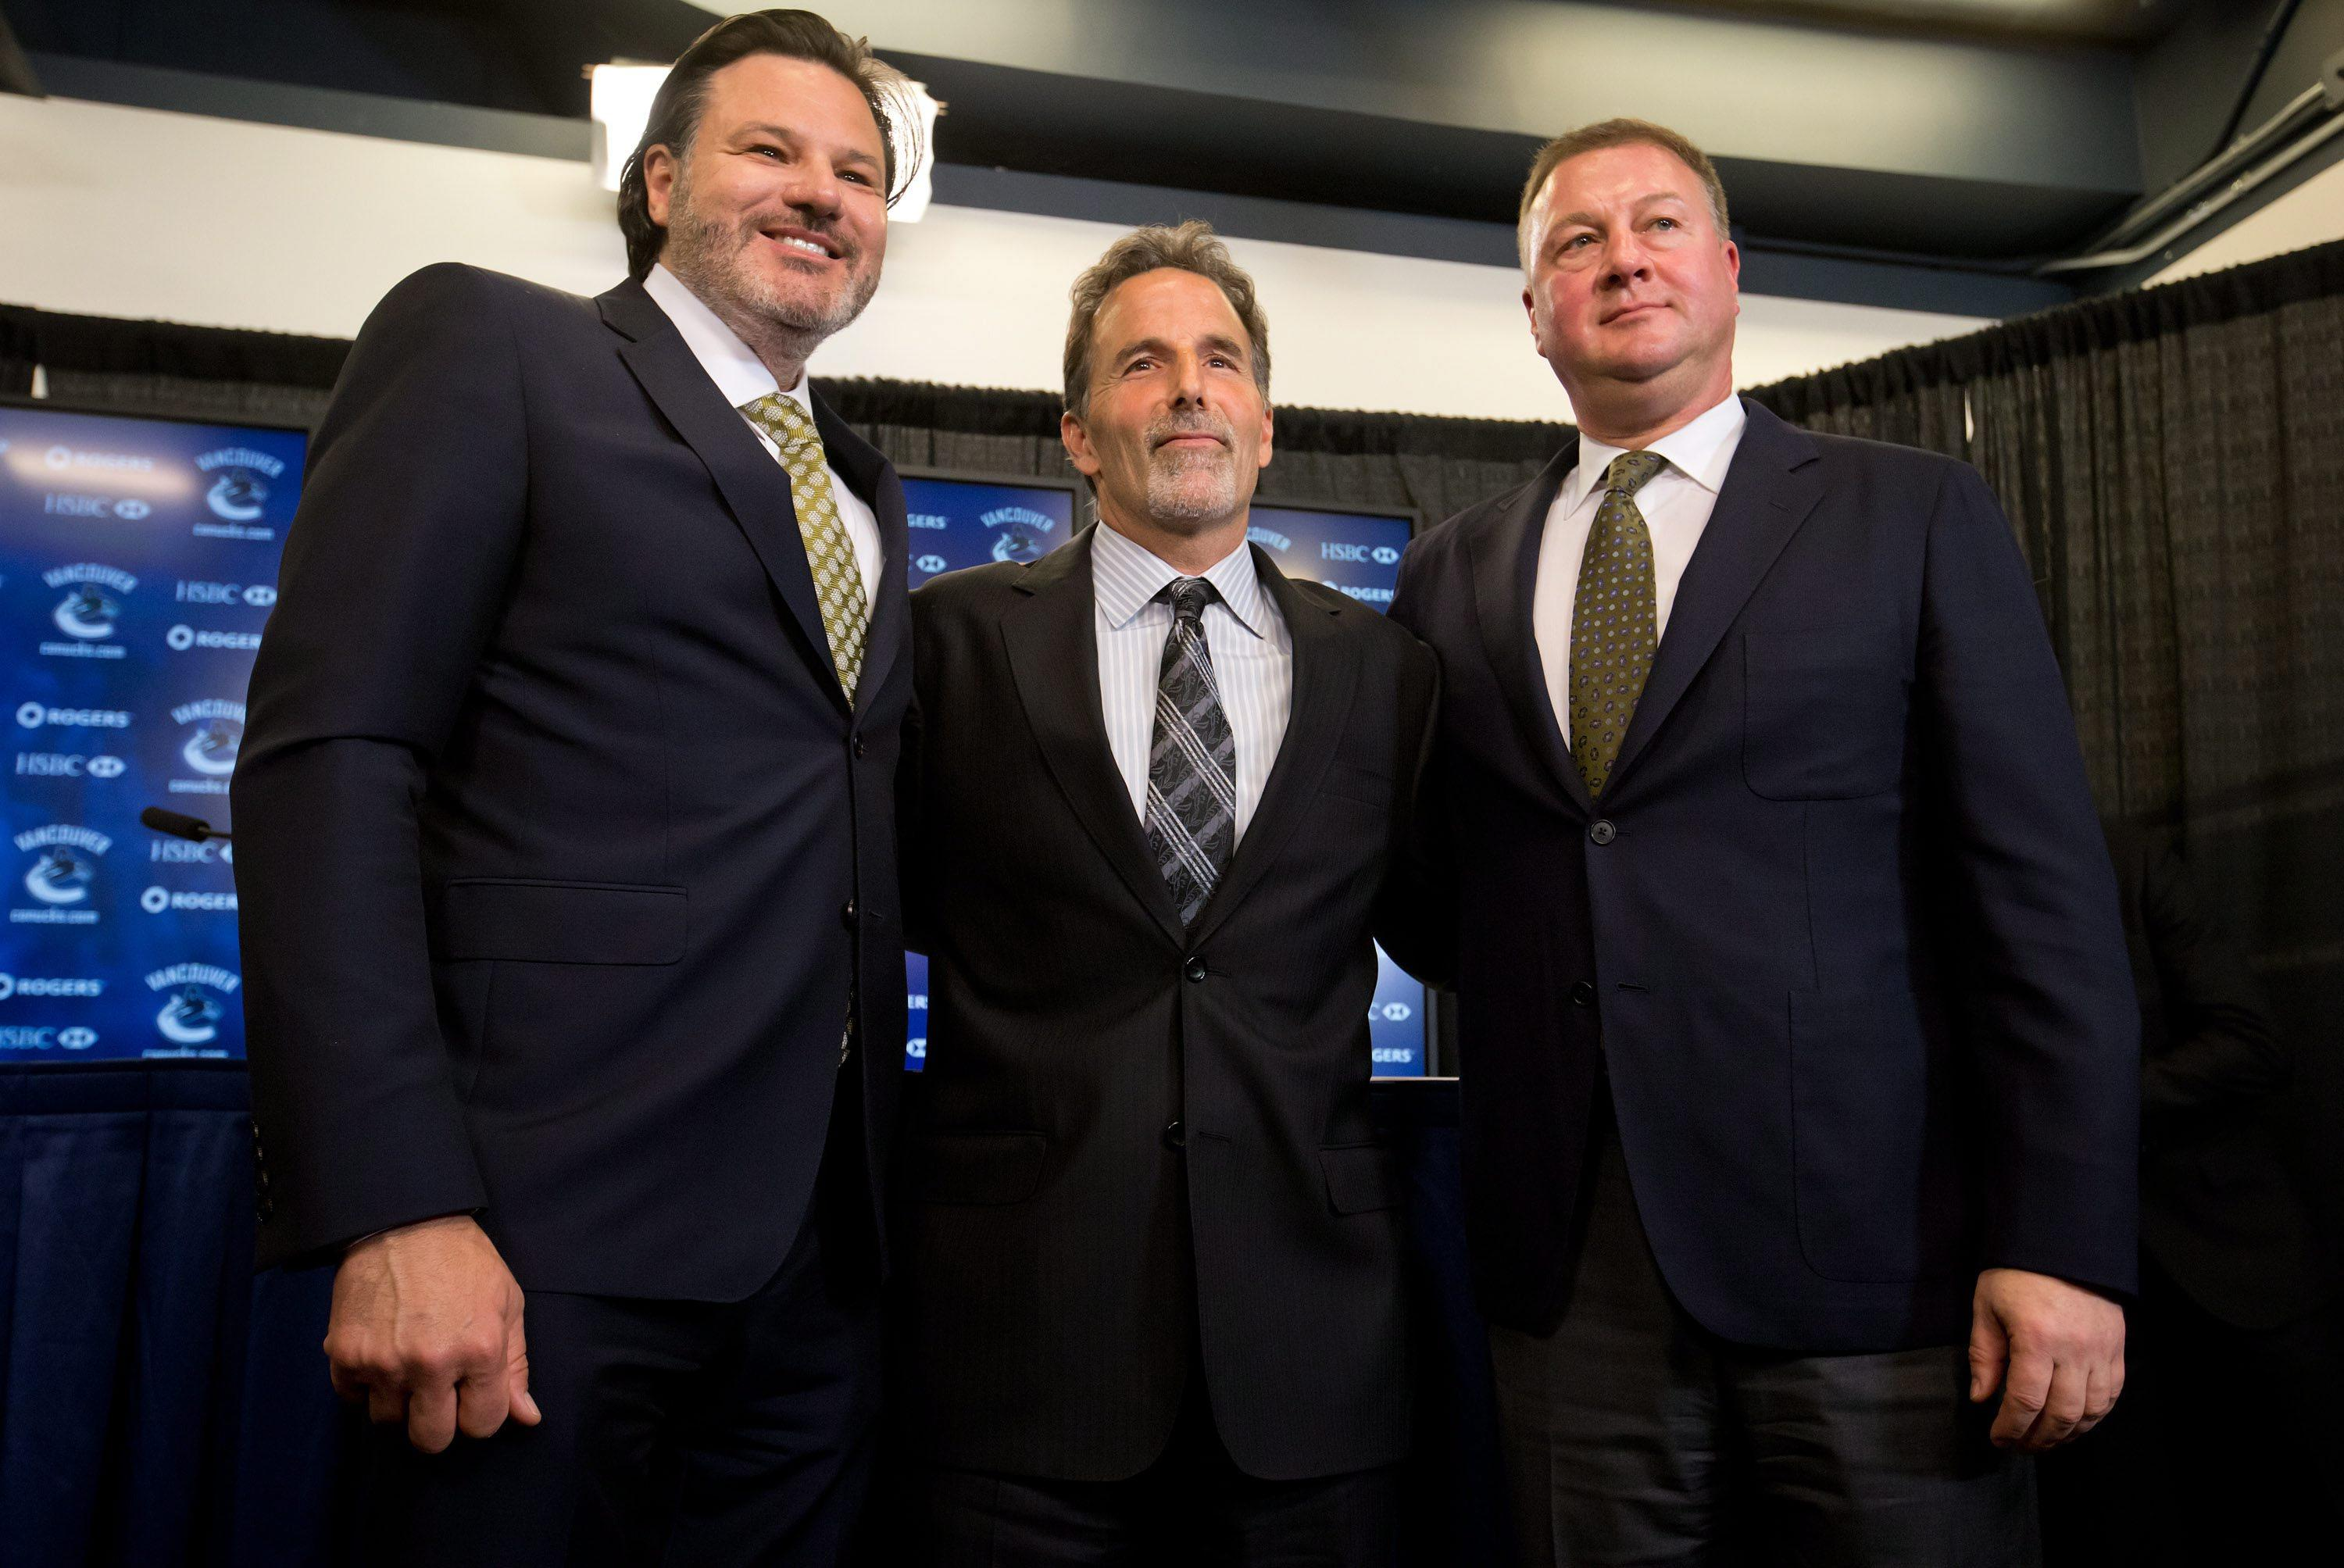 Vancouver Canucks new head coach John Tortorella, center, poses for photographs with owner Francesco Aquilini, left, and general manager Mike Gillis during an NHL hockey news conference announcing his hiring in Vancouver, British Columbia, on Tuesday June 25, 2013. (AP Photo/The Canadian Press, Darryl Dyck)